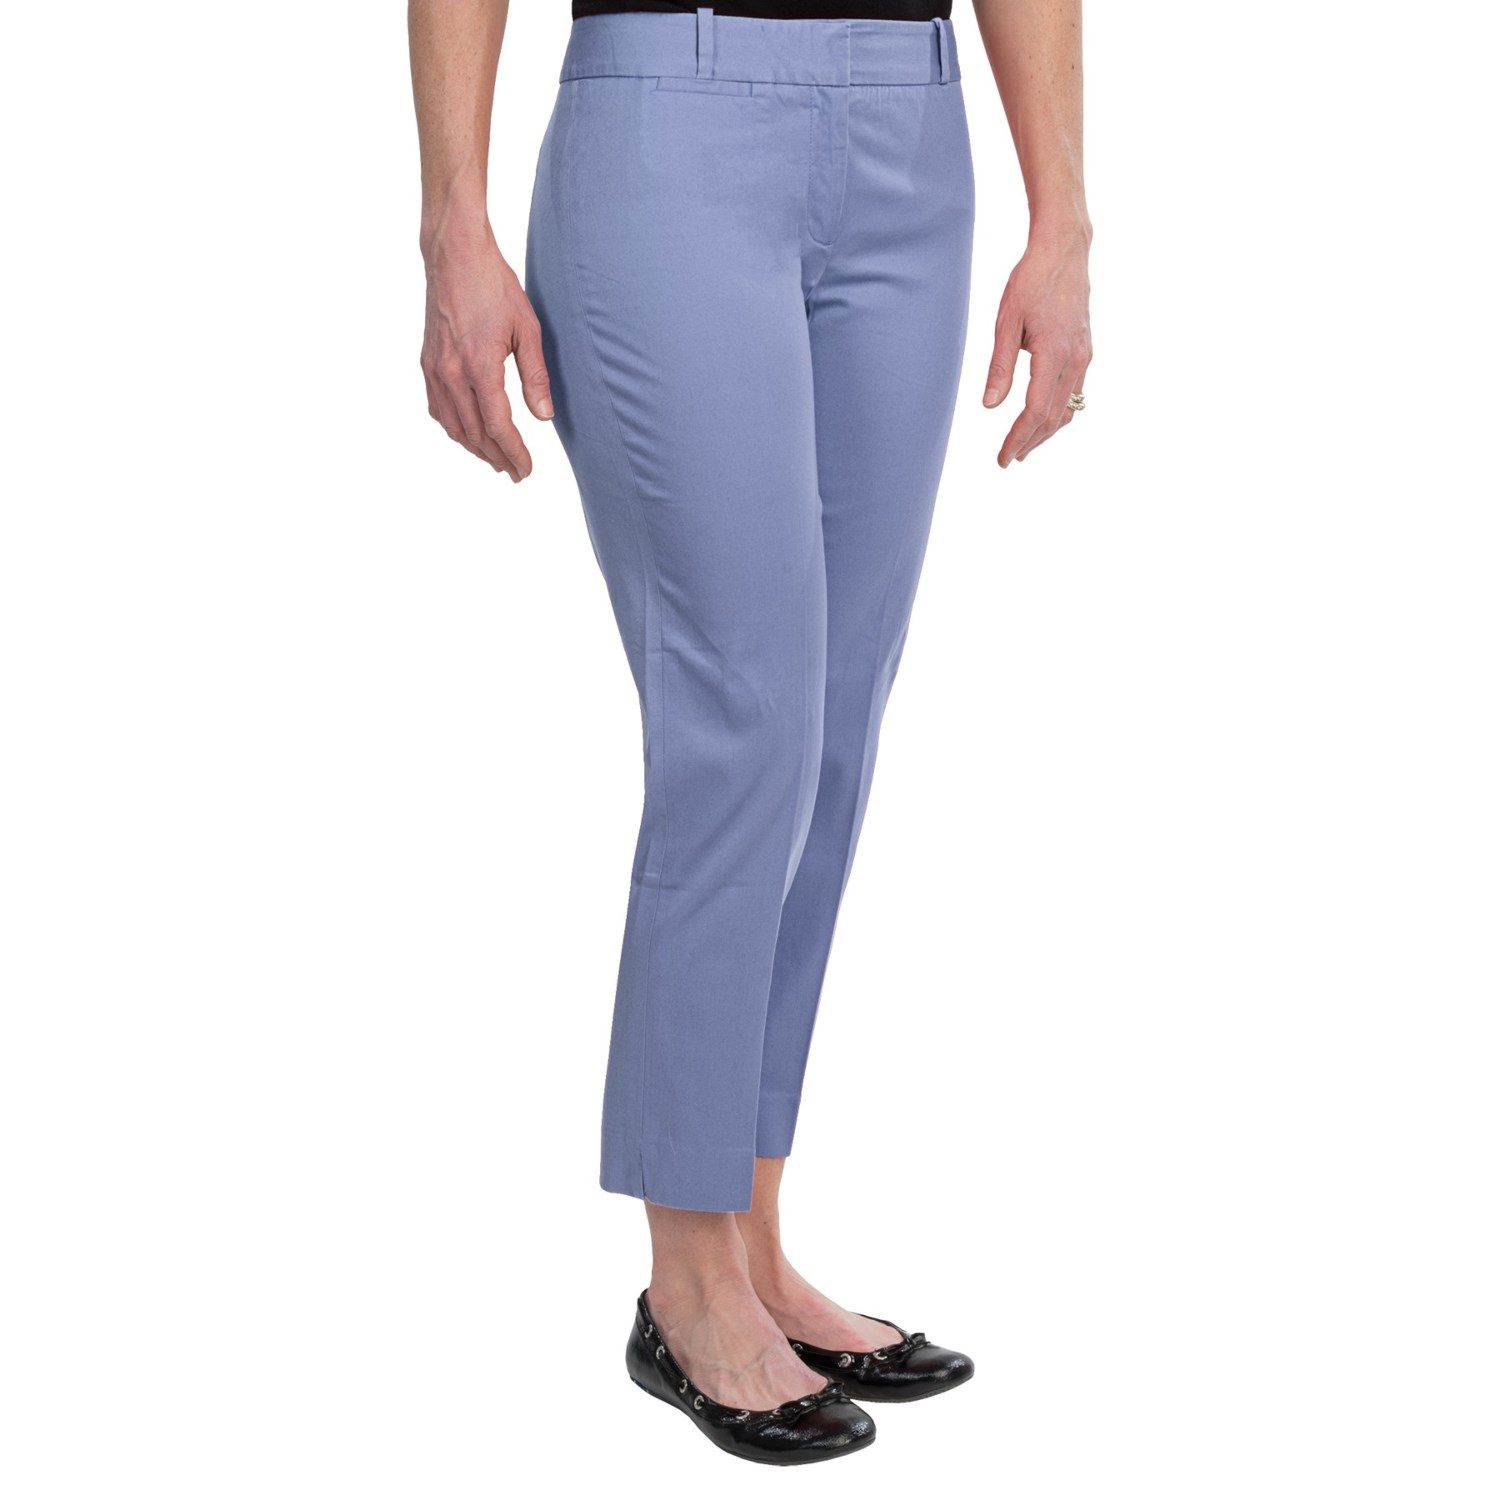 Shop for Stylish Women's Ankle Pants From JCPenney. Add some polish to your outfit with a pair of women's ankle pants from JCPenney. We proudly carry a variety of women's ankle pants from some of the most celebrated fashion houses including Liz Claiborne, Worthington, and St. John's Bay.